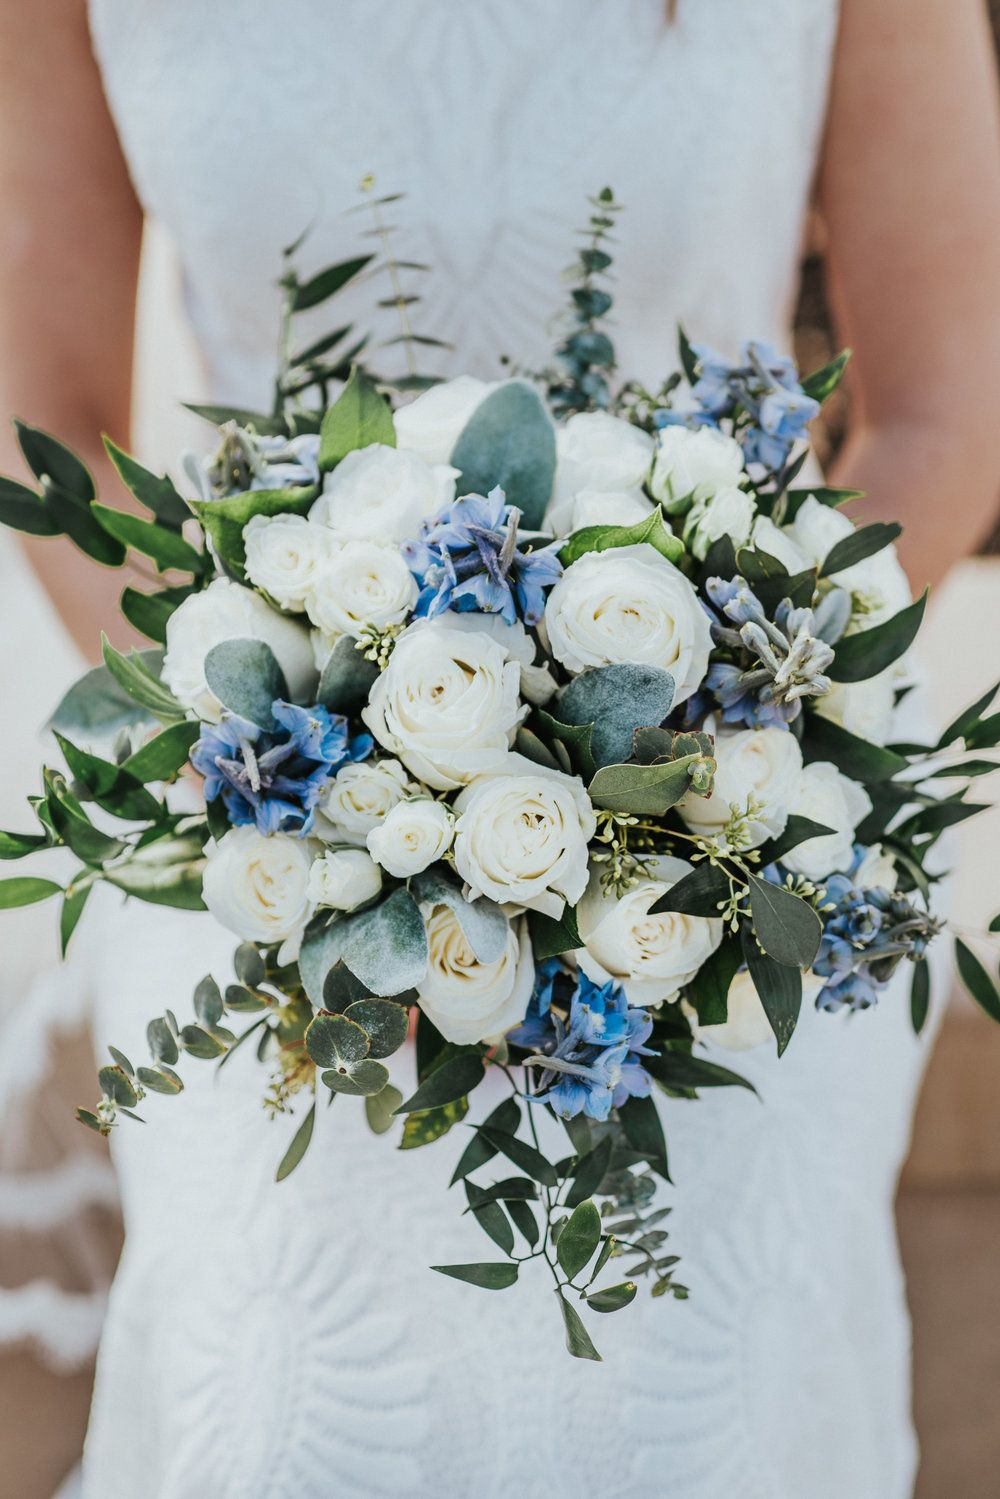 Austin And Madison Wedding Day Logan Utah Lds Temple Wedding Logan Utah Wedding Photographer Kristi Alyse Photography In 2020 Blue Wedding Bouquet Blue Wedding Flowers Wedding Bouquets